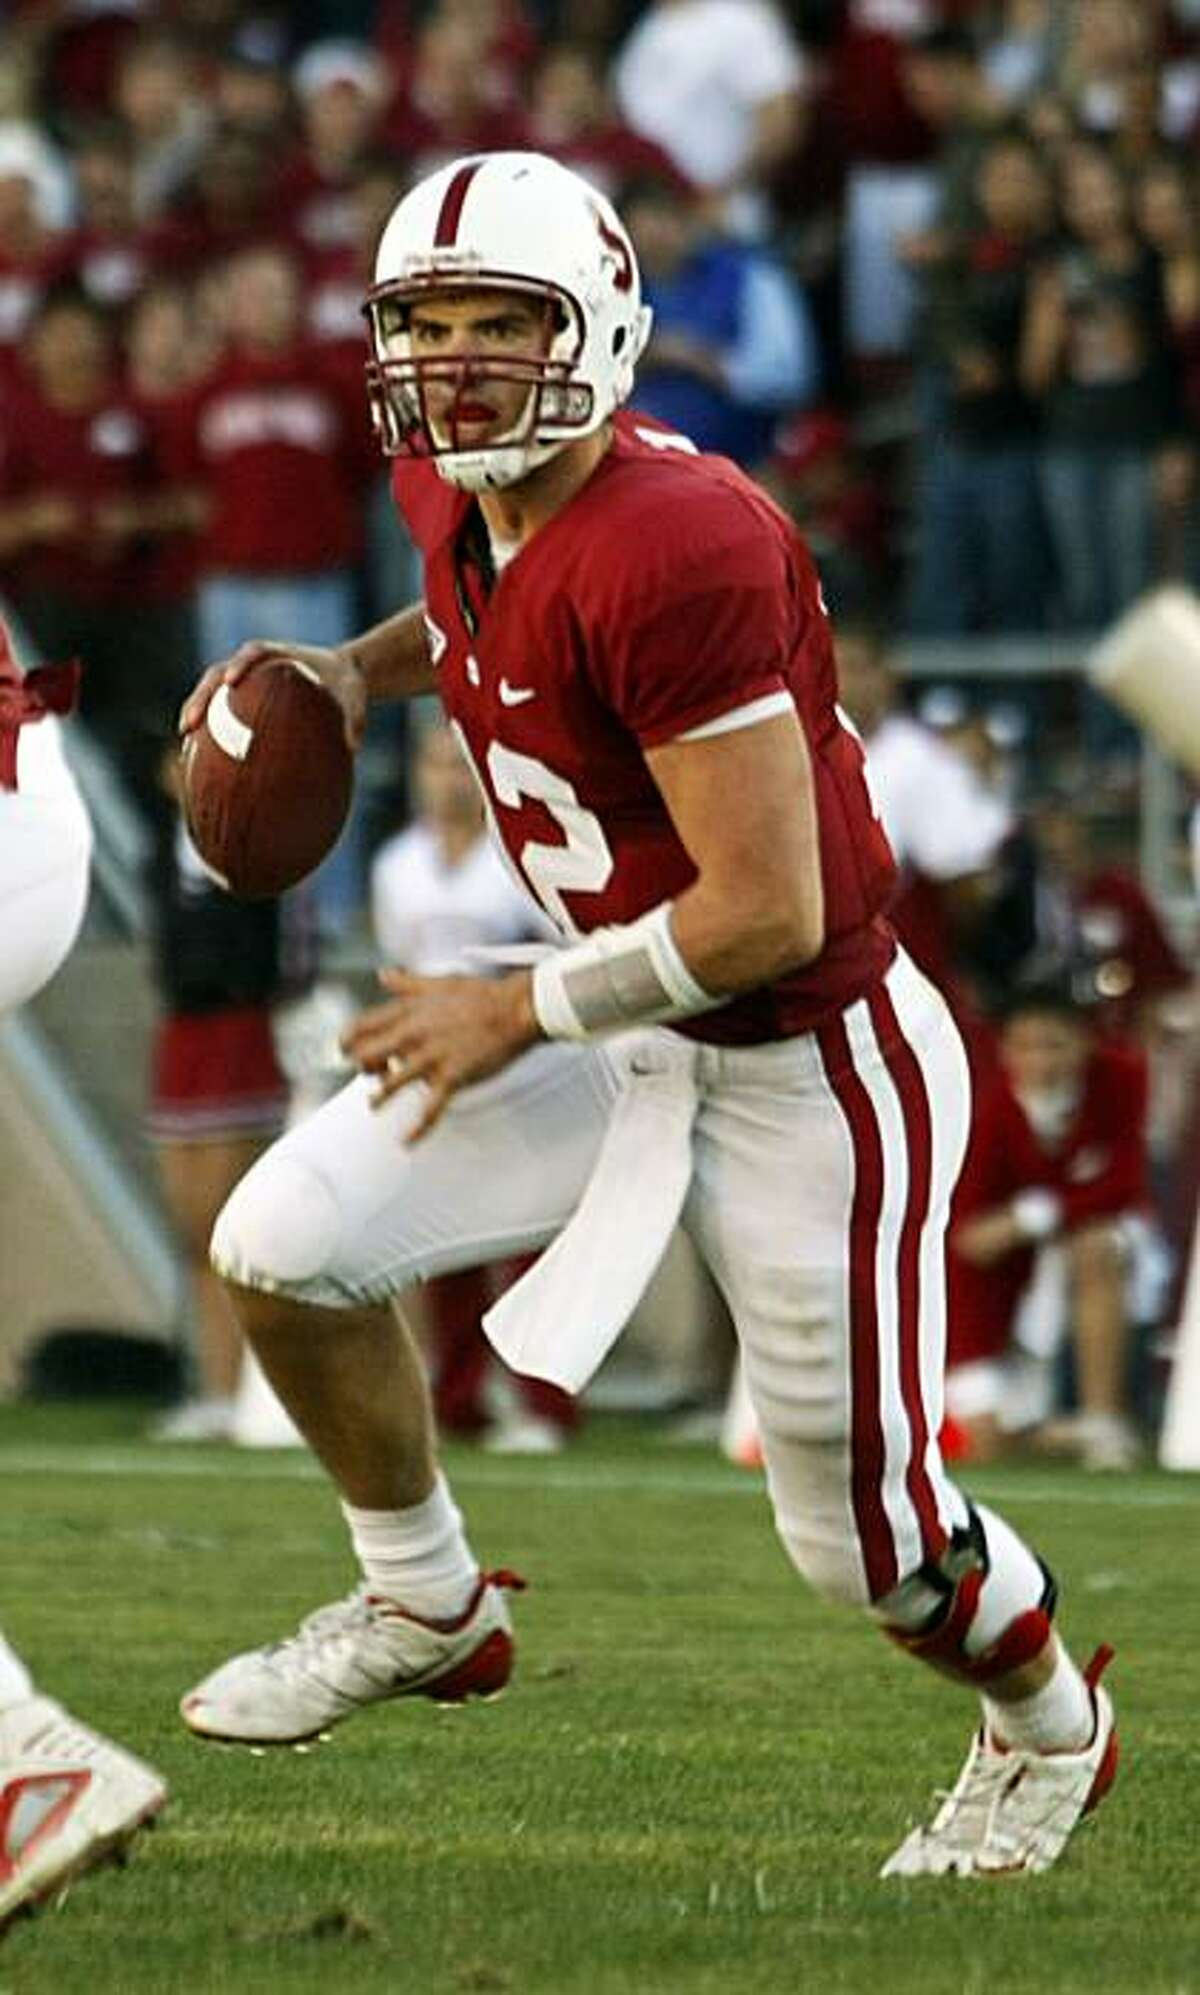 Stanford's Andrew Luck rolls out in the red-zone in second half action Saturday Nov 7, 2009. Stanford defeated 7th ranked Oregon 51-42 in their NCAA College football game in Palo Alto Ca.